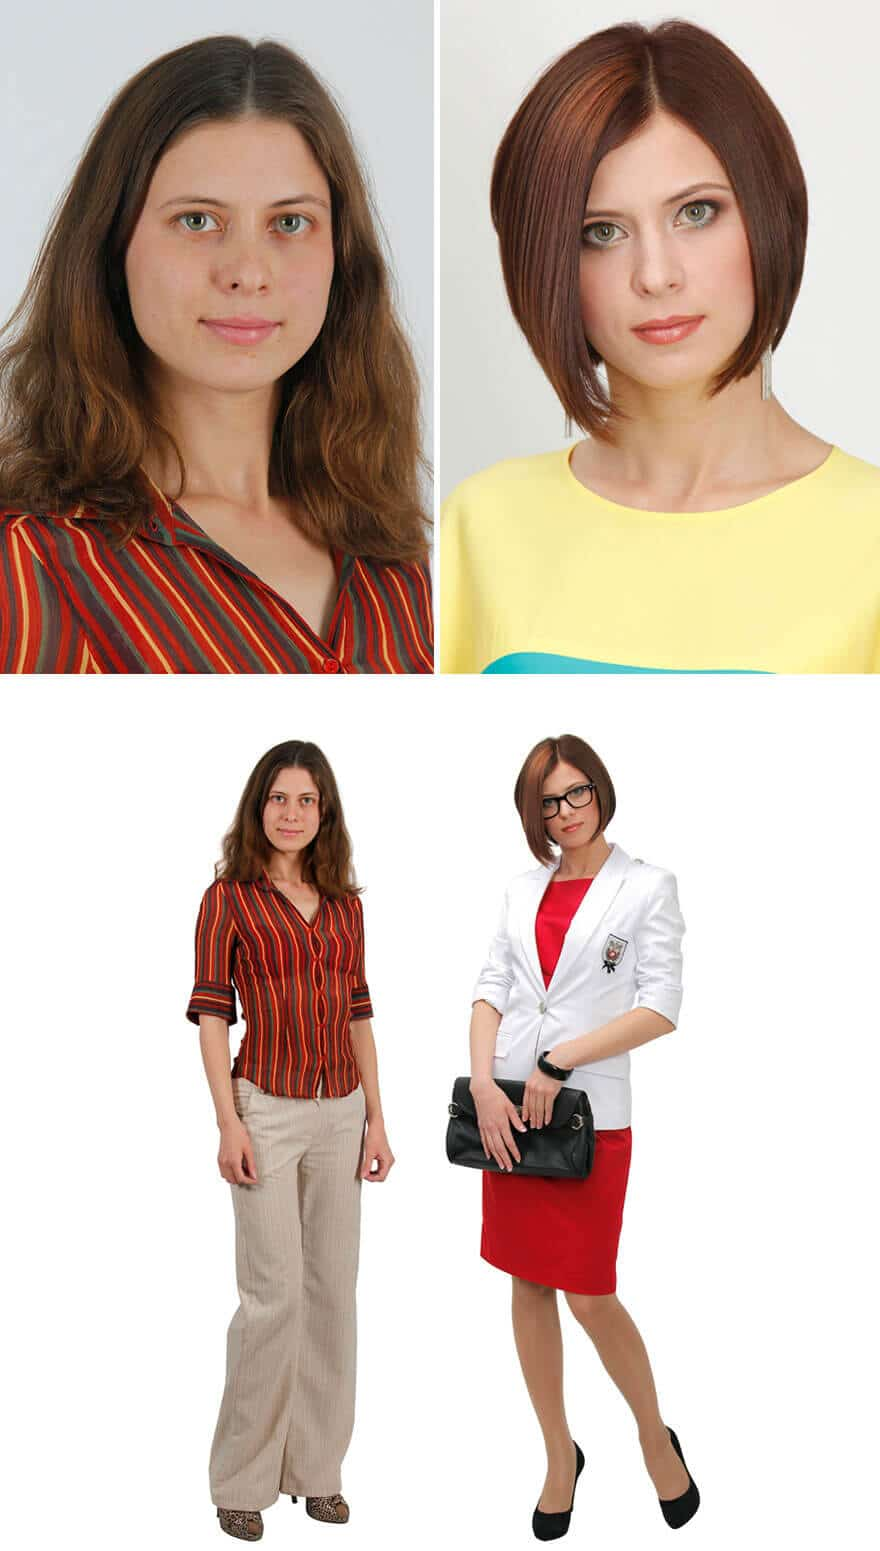 Büro-Outfit Tipps - Umstyling